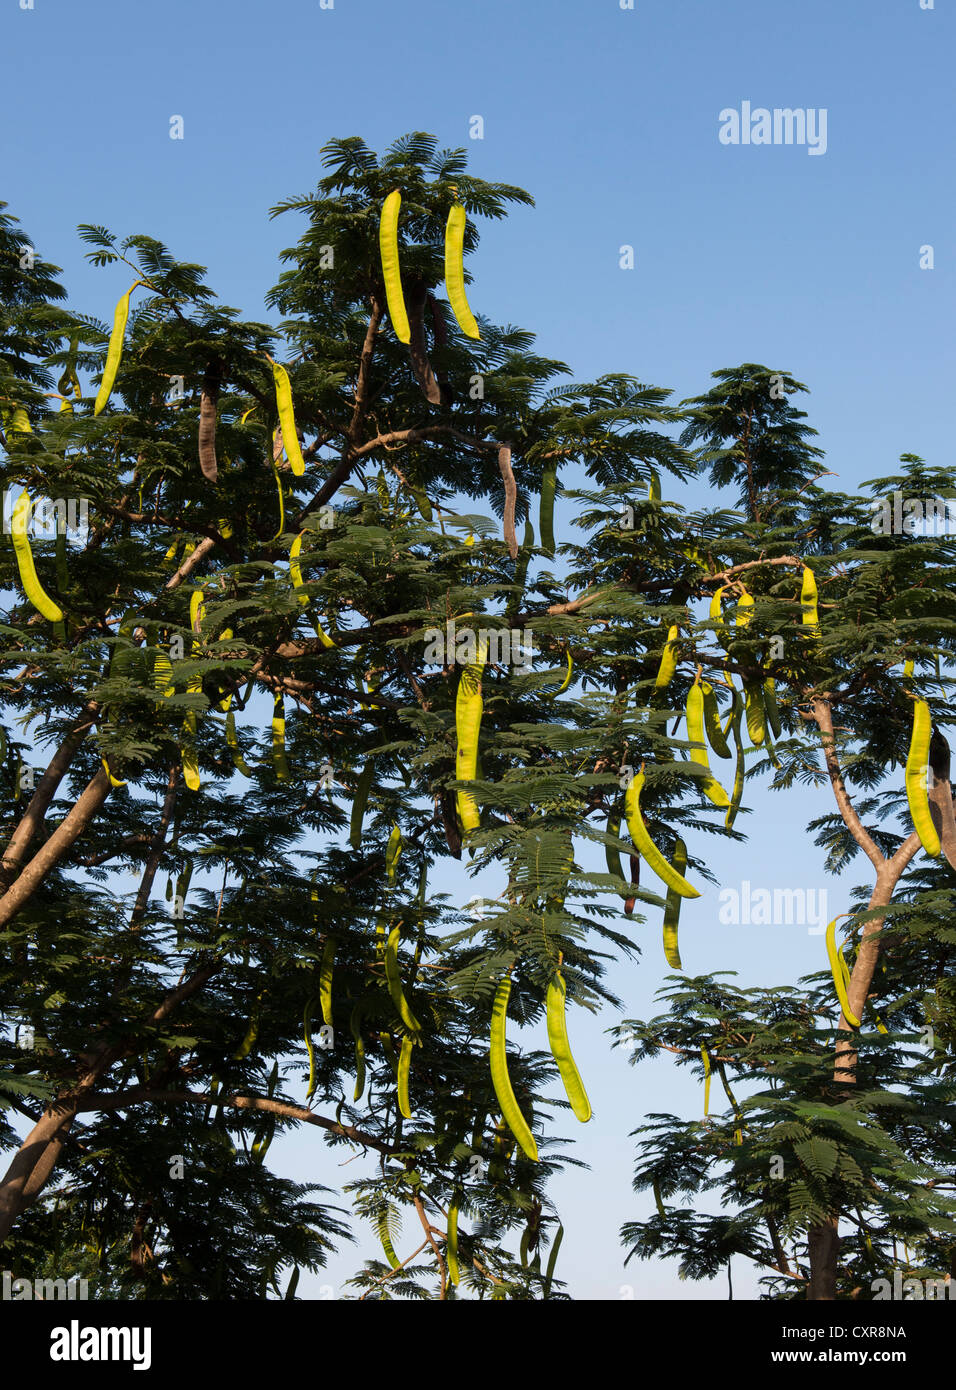 Delonix regia. Poinciana Tree with long seed pods in the indian countryside - Stock Image